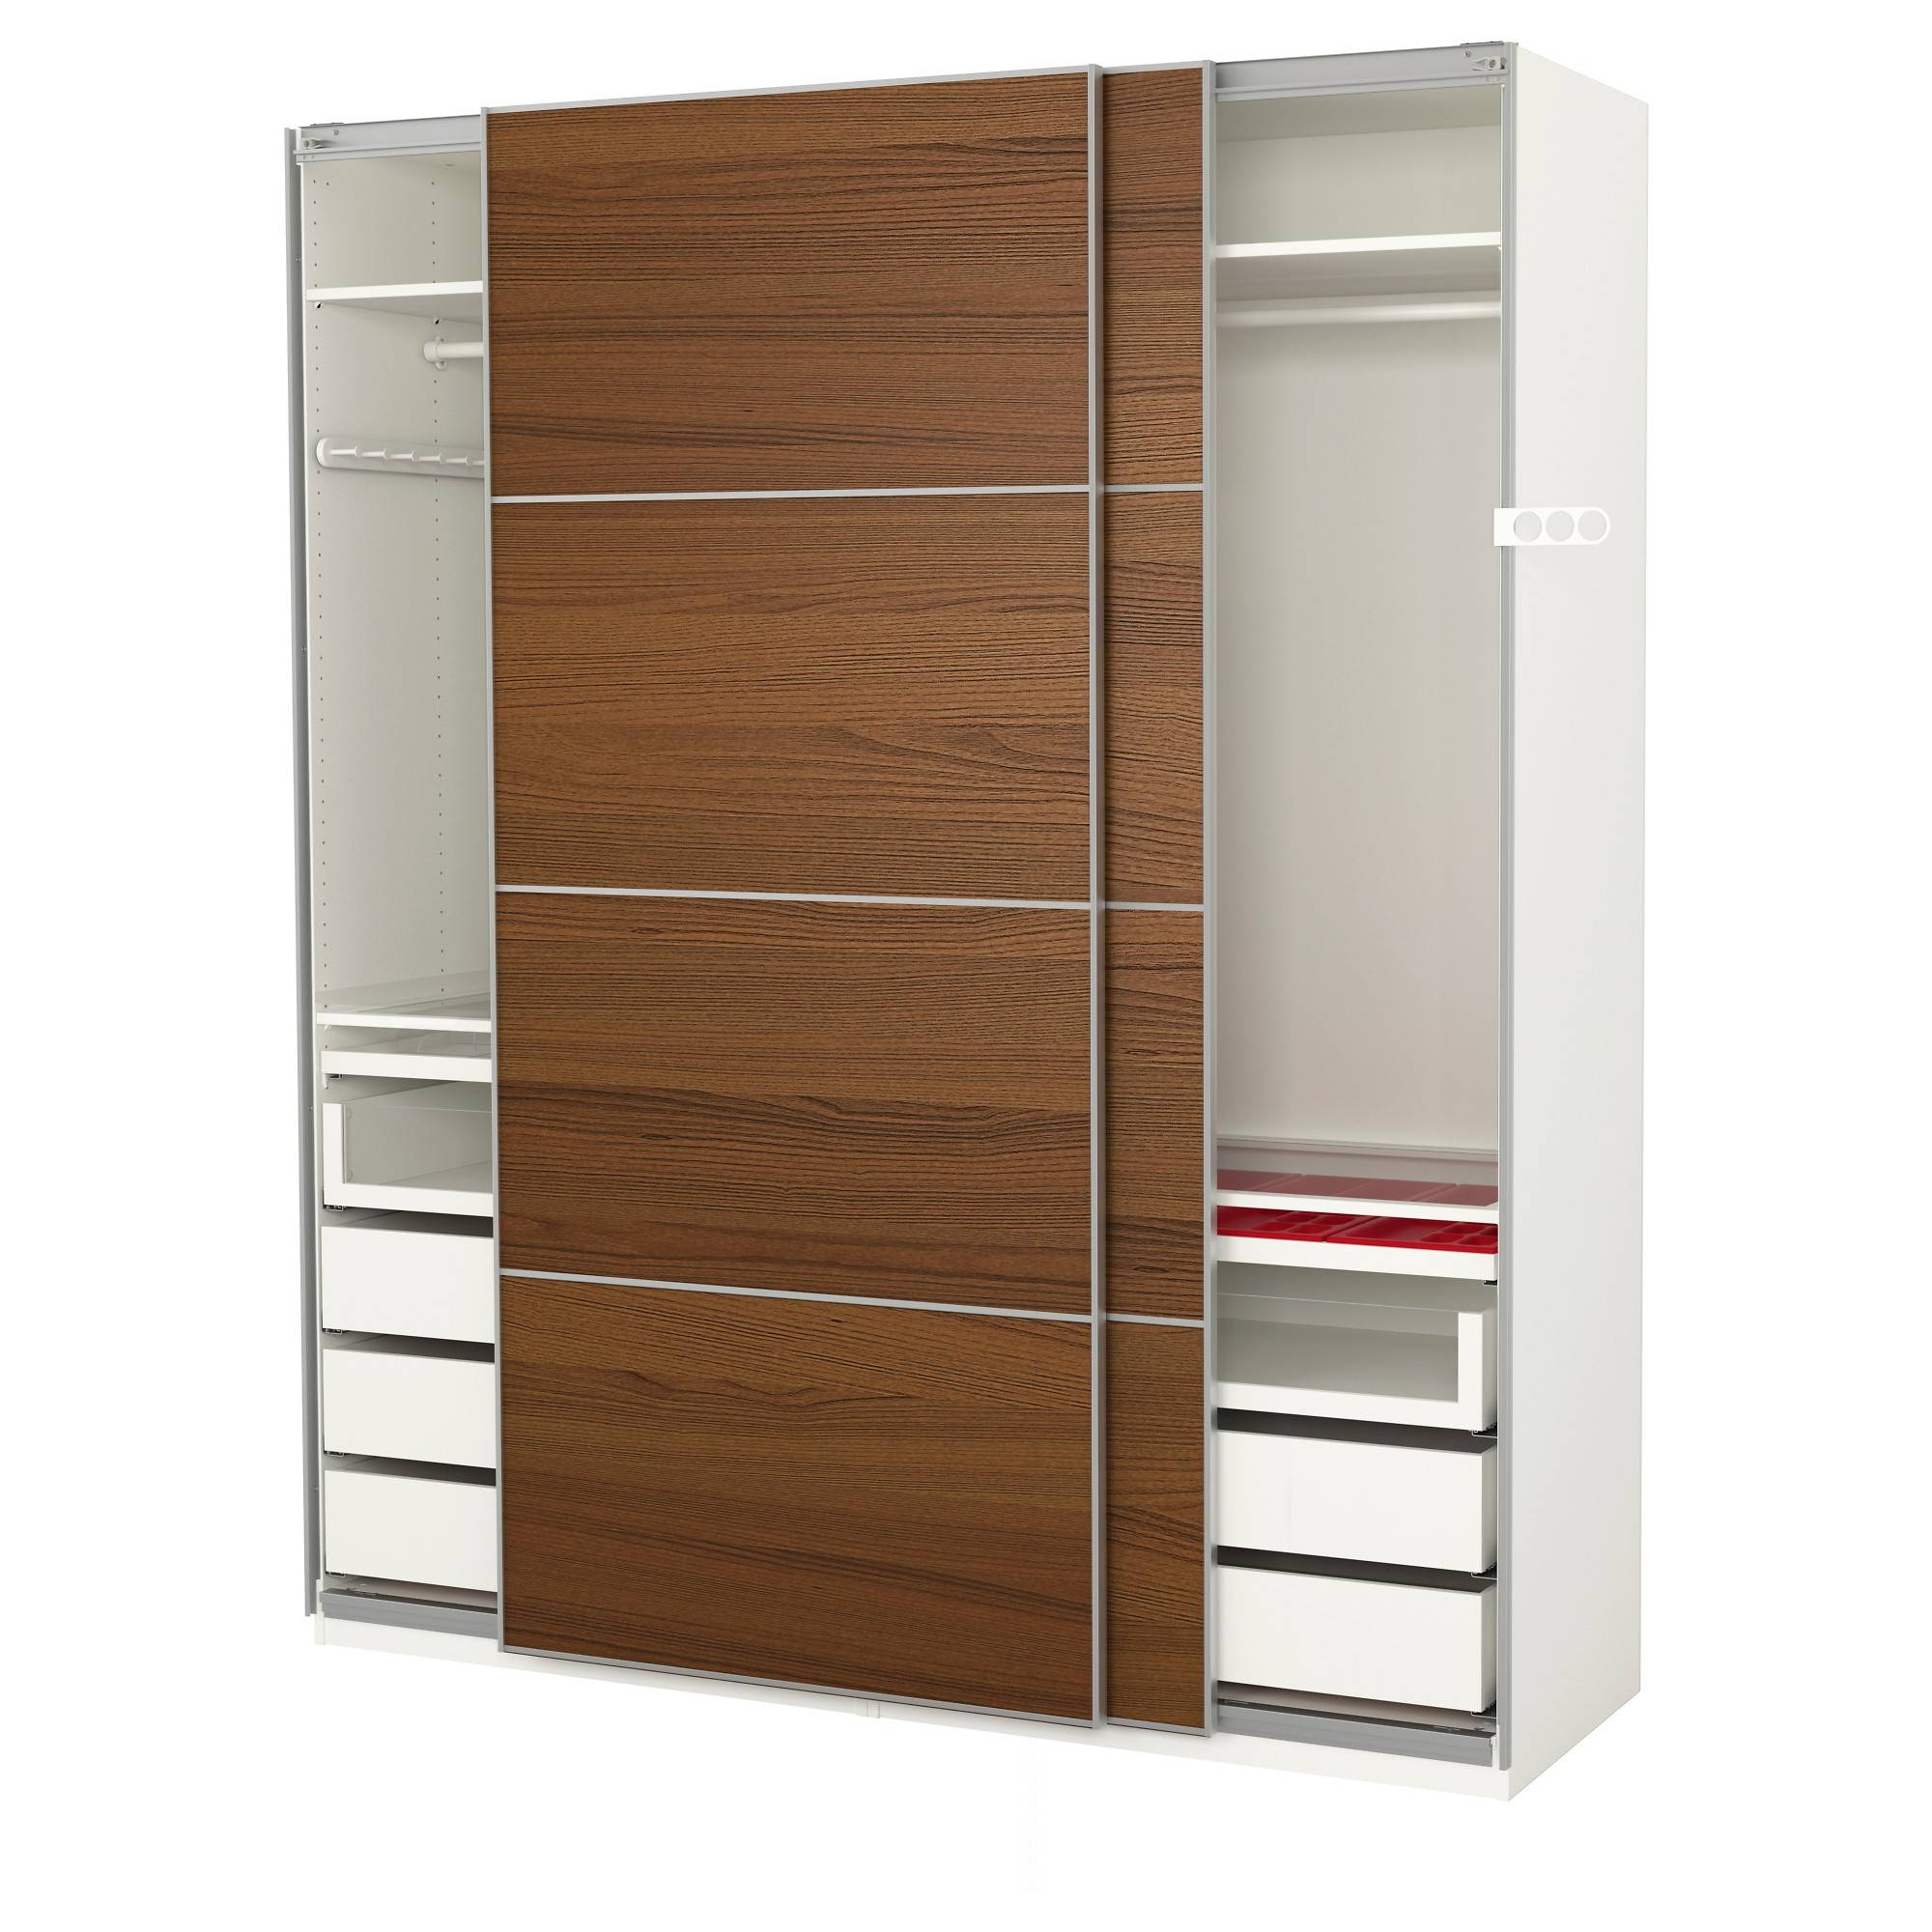 Wardrobes - Pax System - Ikea in 3 Door Wardrobe With Drawers and Shelves (Image 24 of 30)